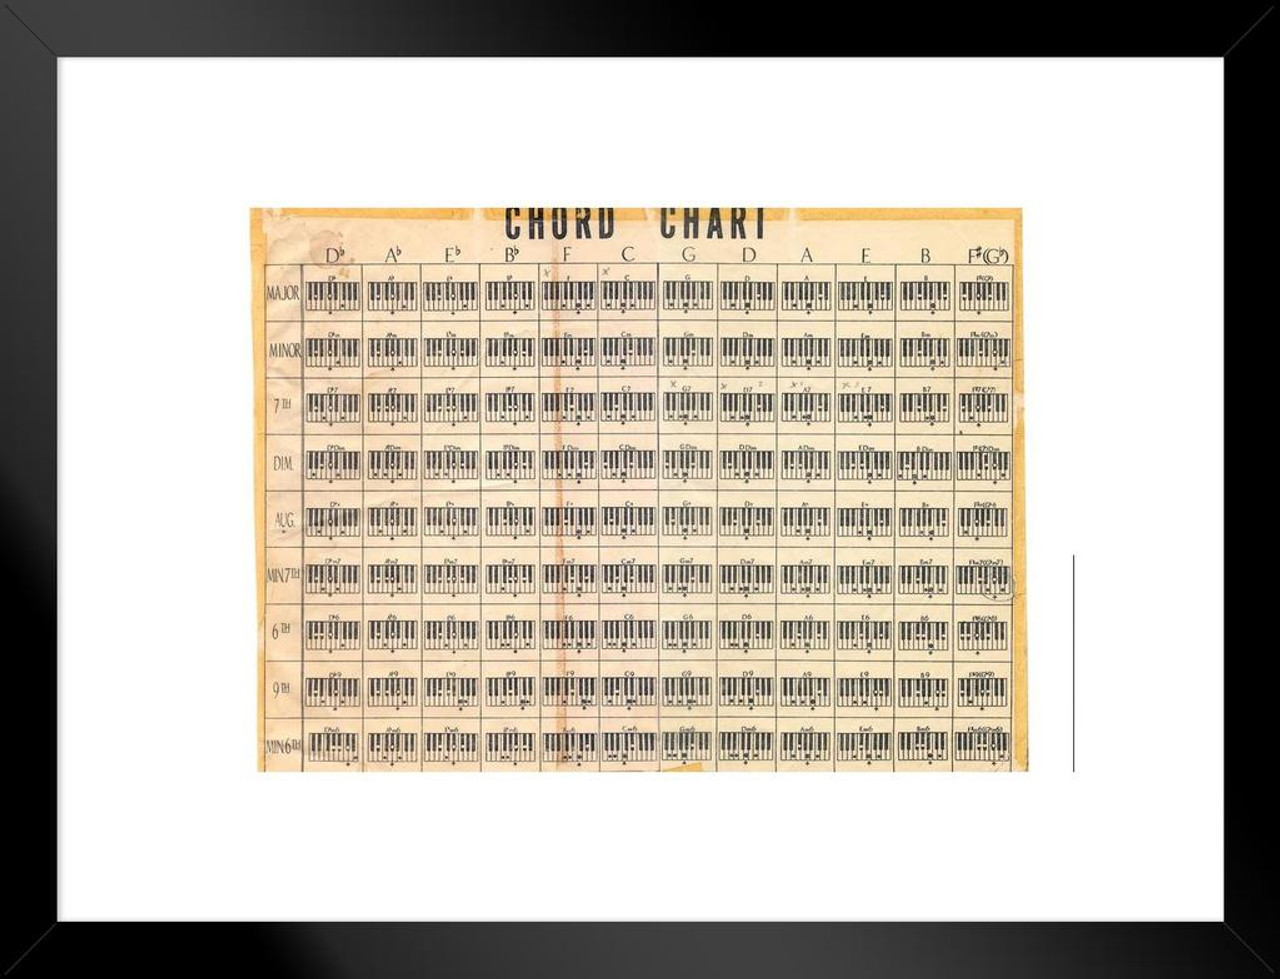 photograph about Piano Chords Chart Printable known as Tunes Chord Chart Piano Keys Basic Layout Diagram Matted Framed Wall Artwork Print 26x20 inch